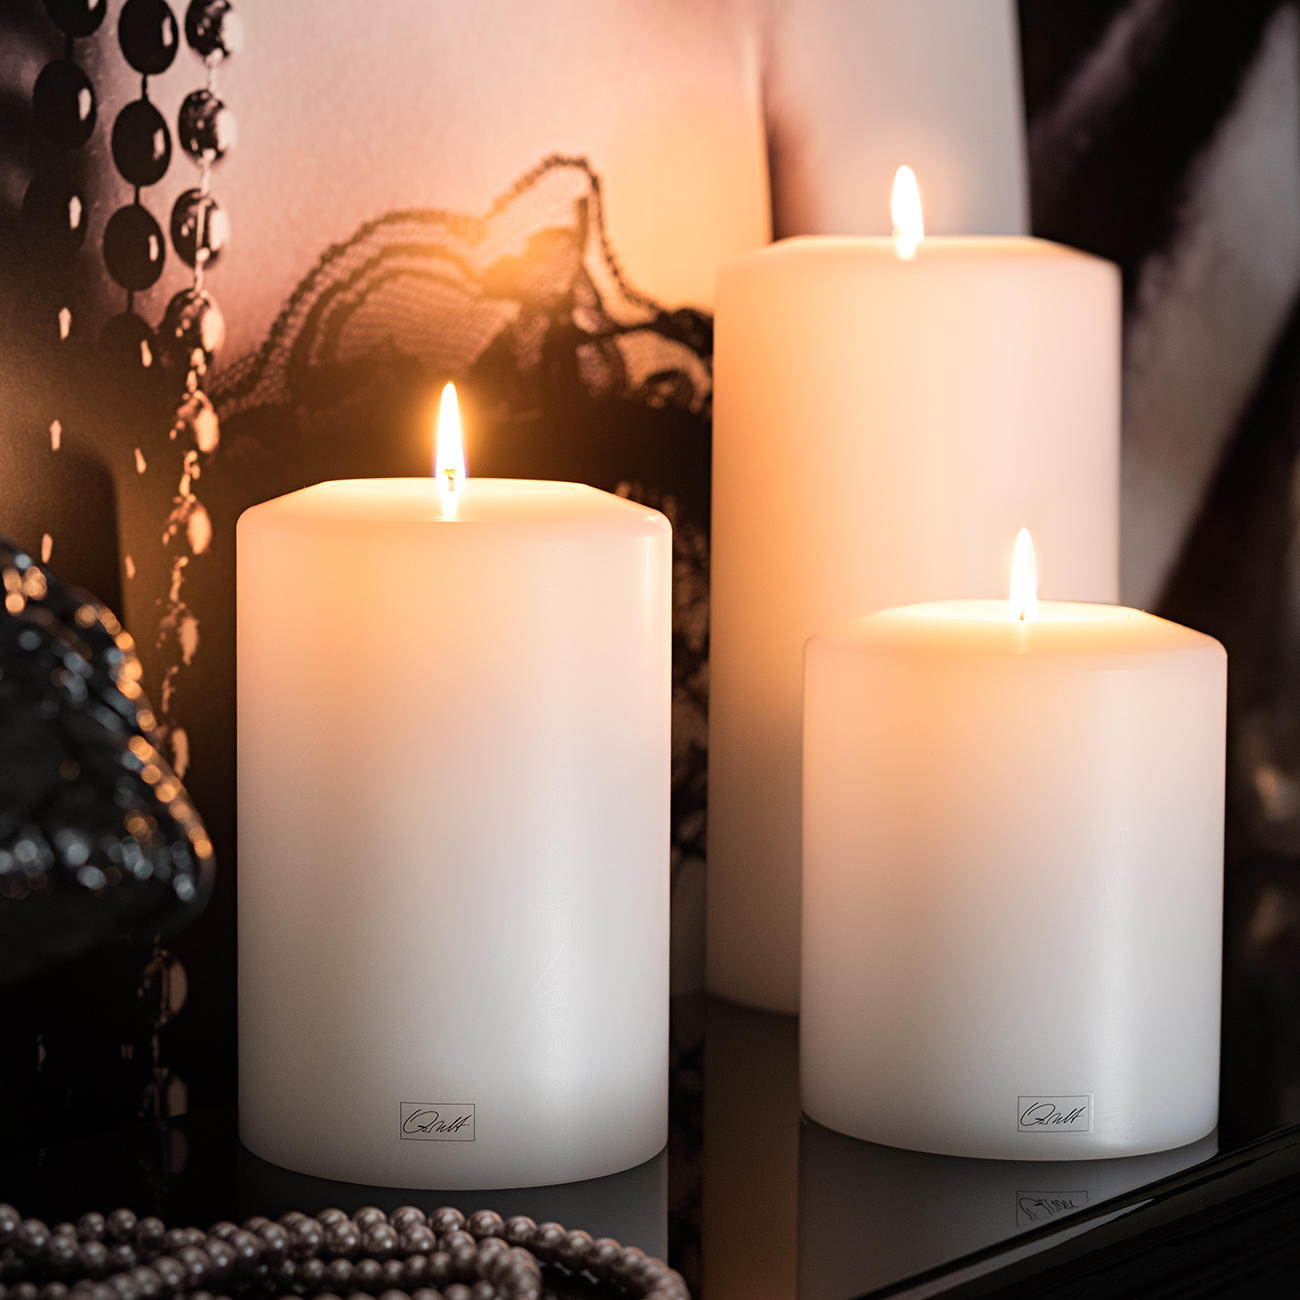 Buy Farluce Permanent Candle 3 year Product Guarantee